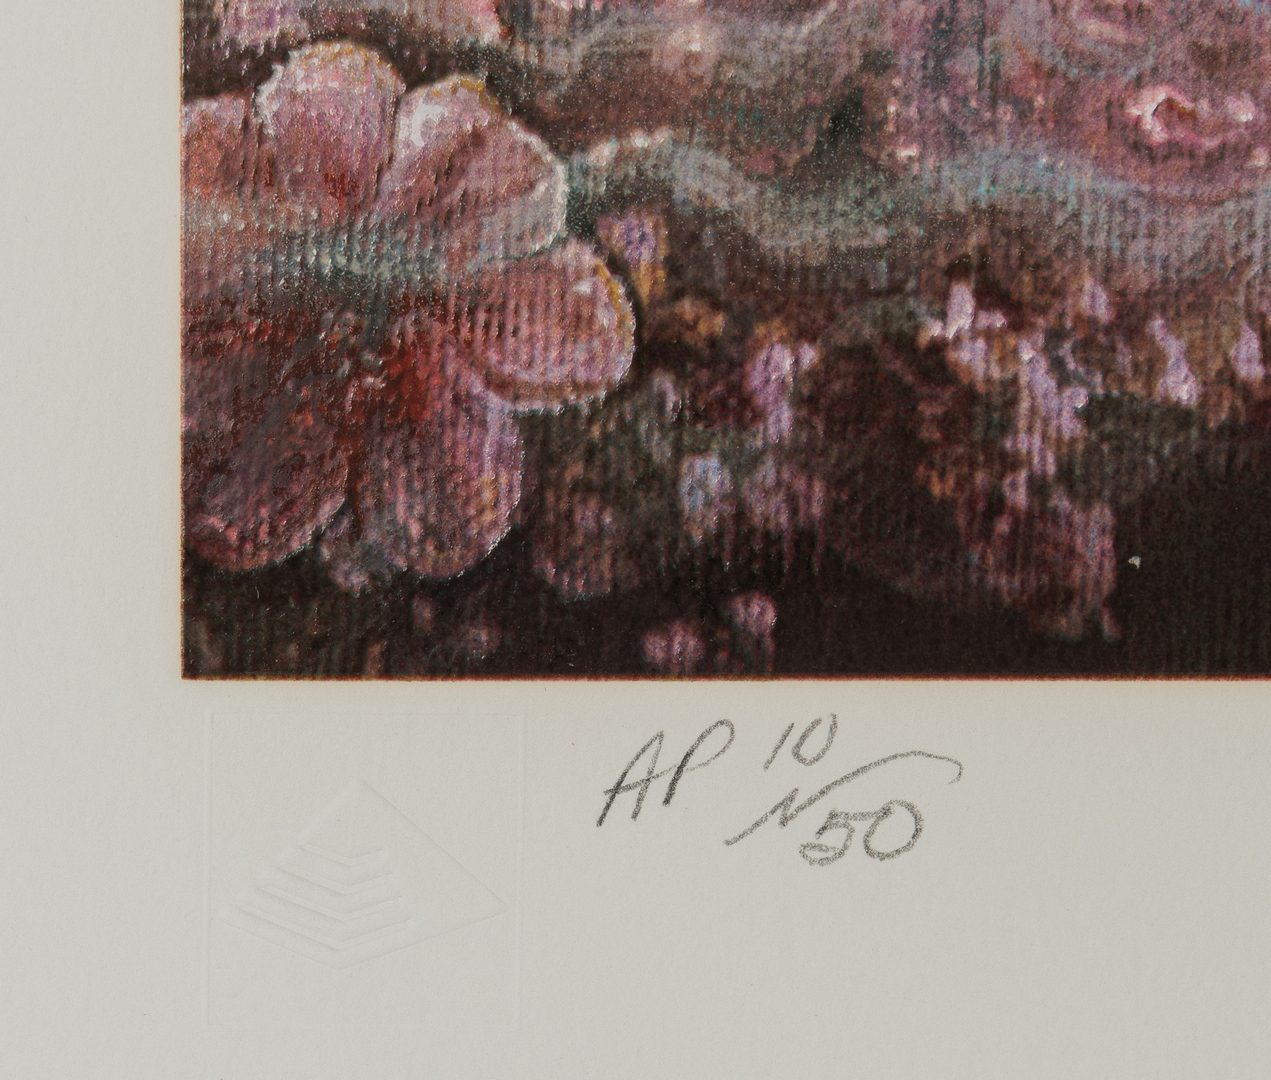 Lot 408: 7 Brett Livingstone Strong Serigraphs